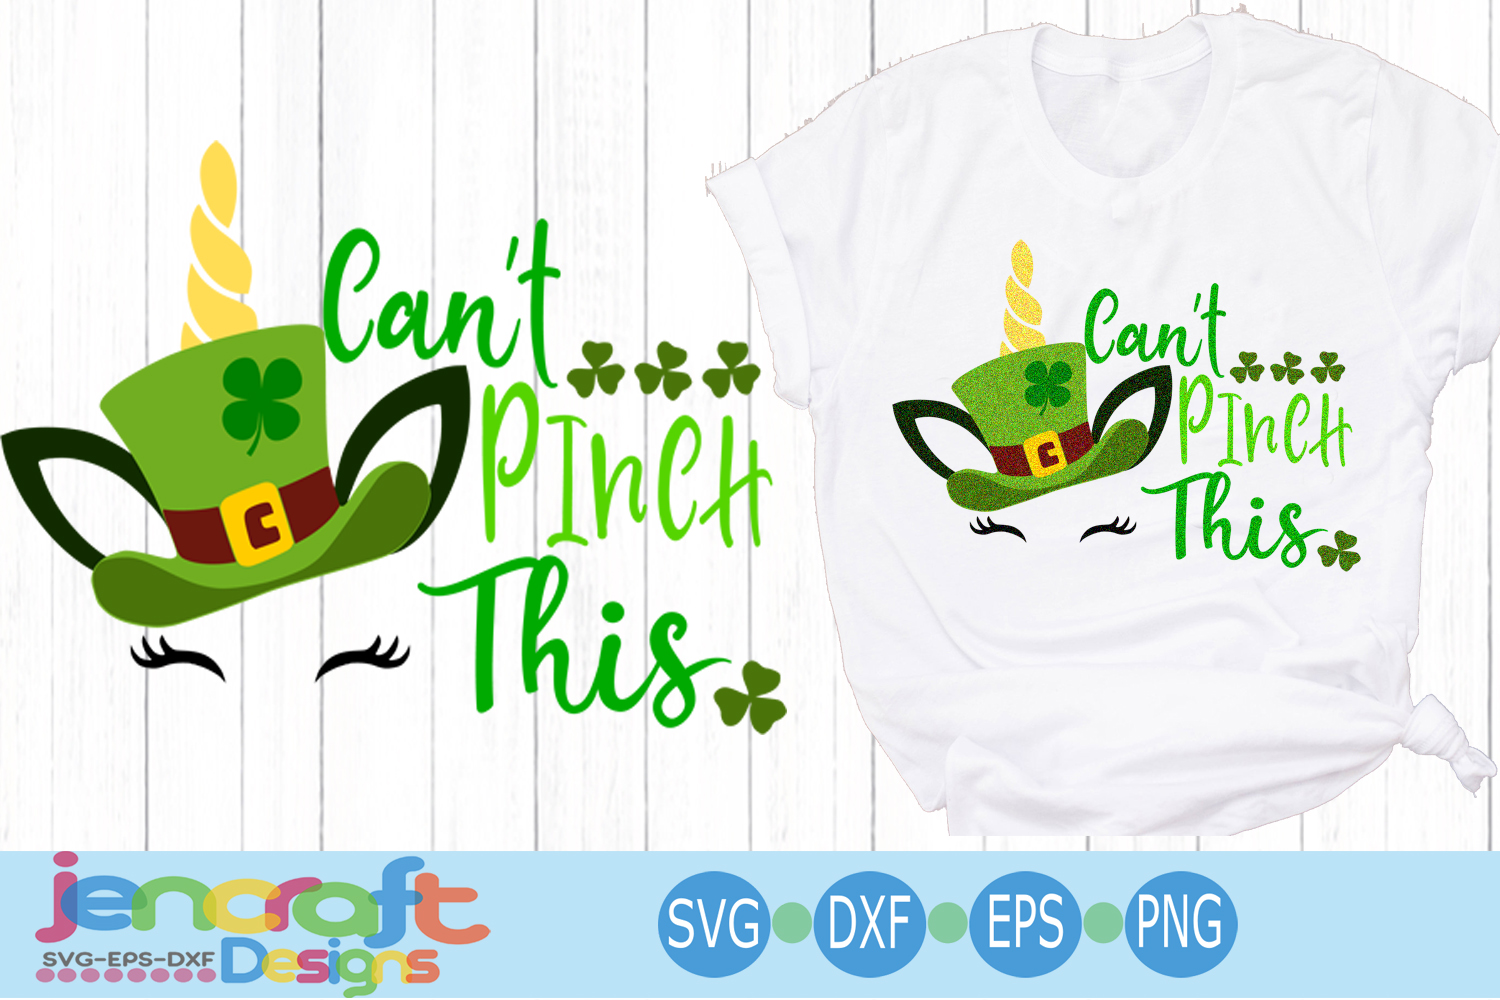 St. Patrick's day SVG, Unicorn SVG, Can't Pinch This svg example image 1